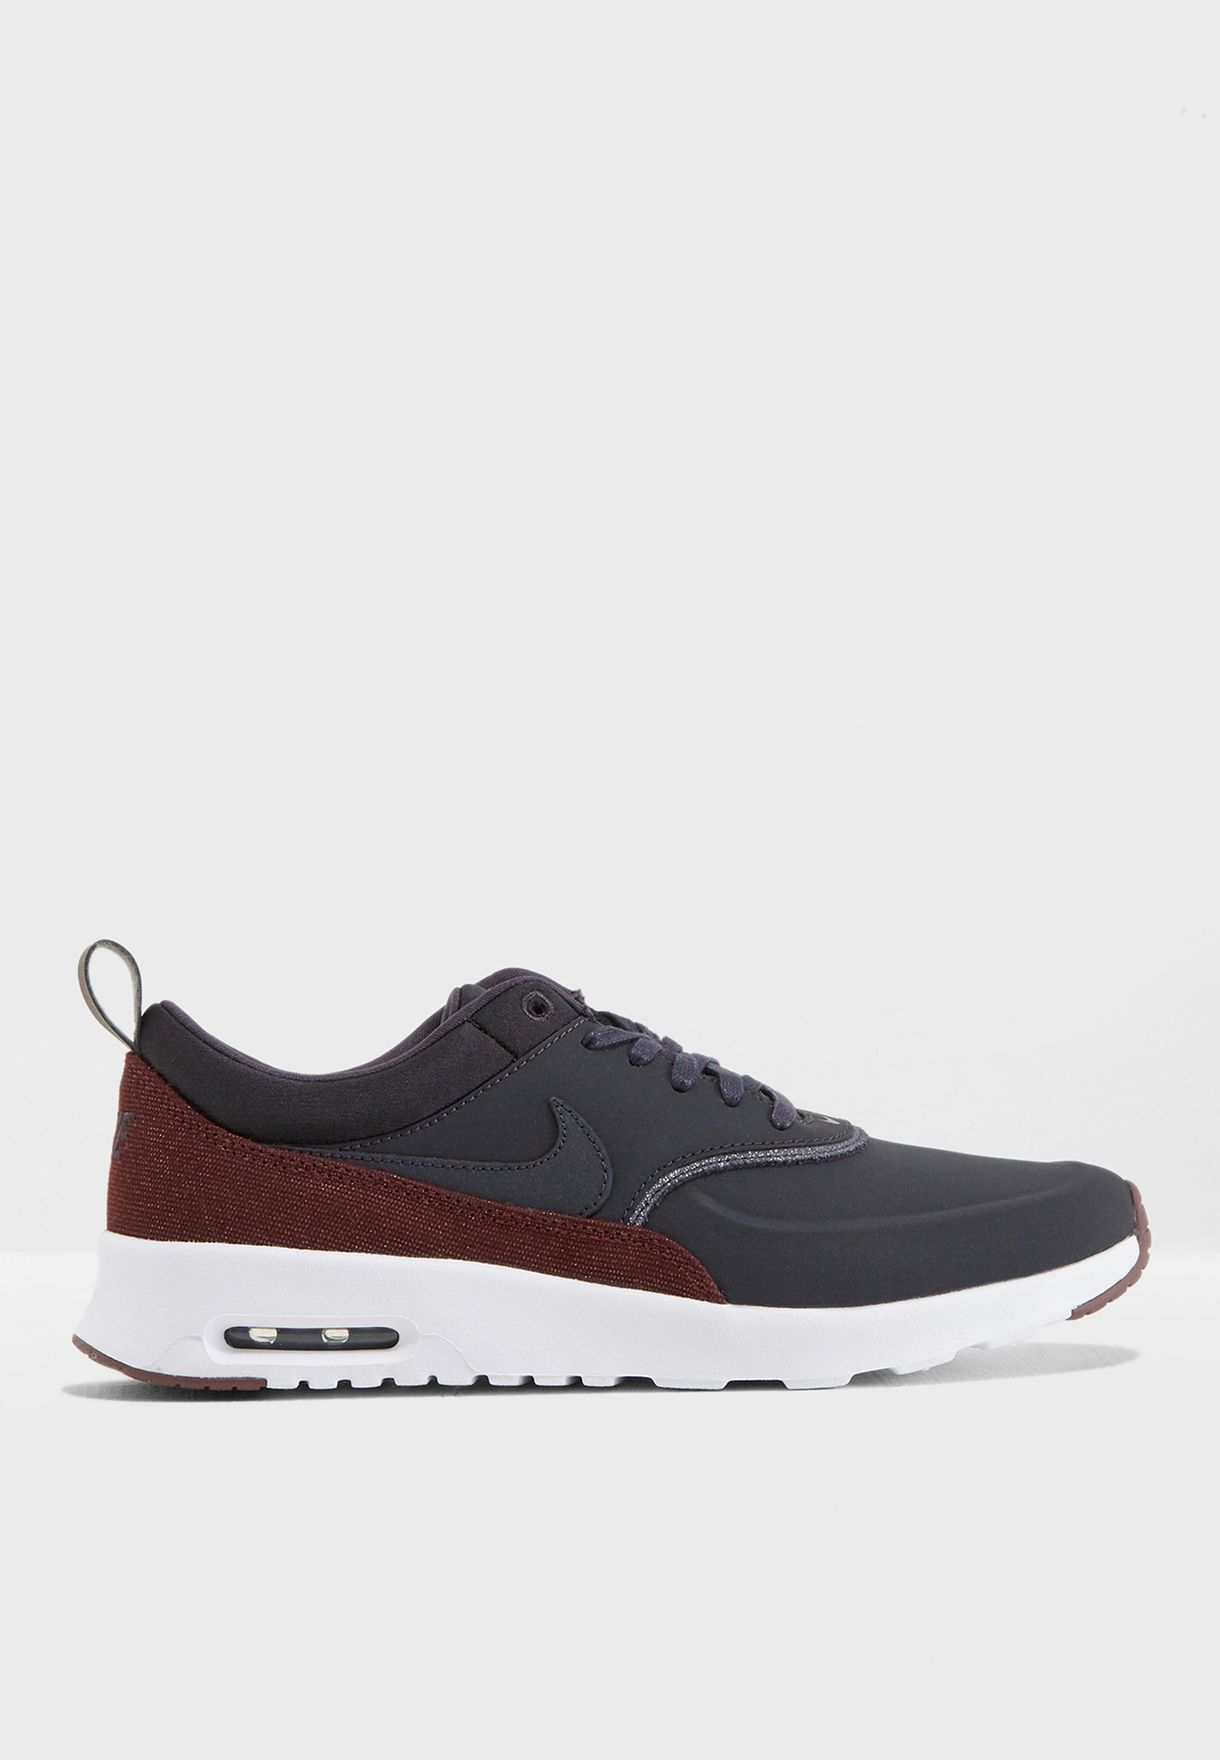 new arrival 5e971 7a166 Air Max Thea PRM